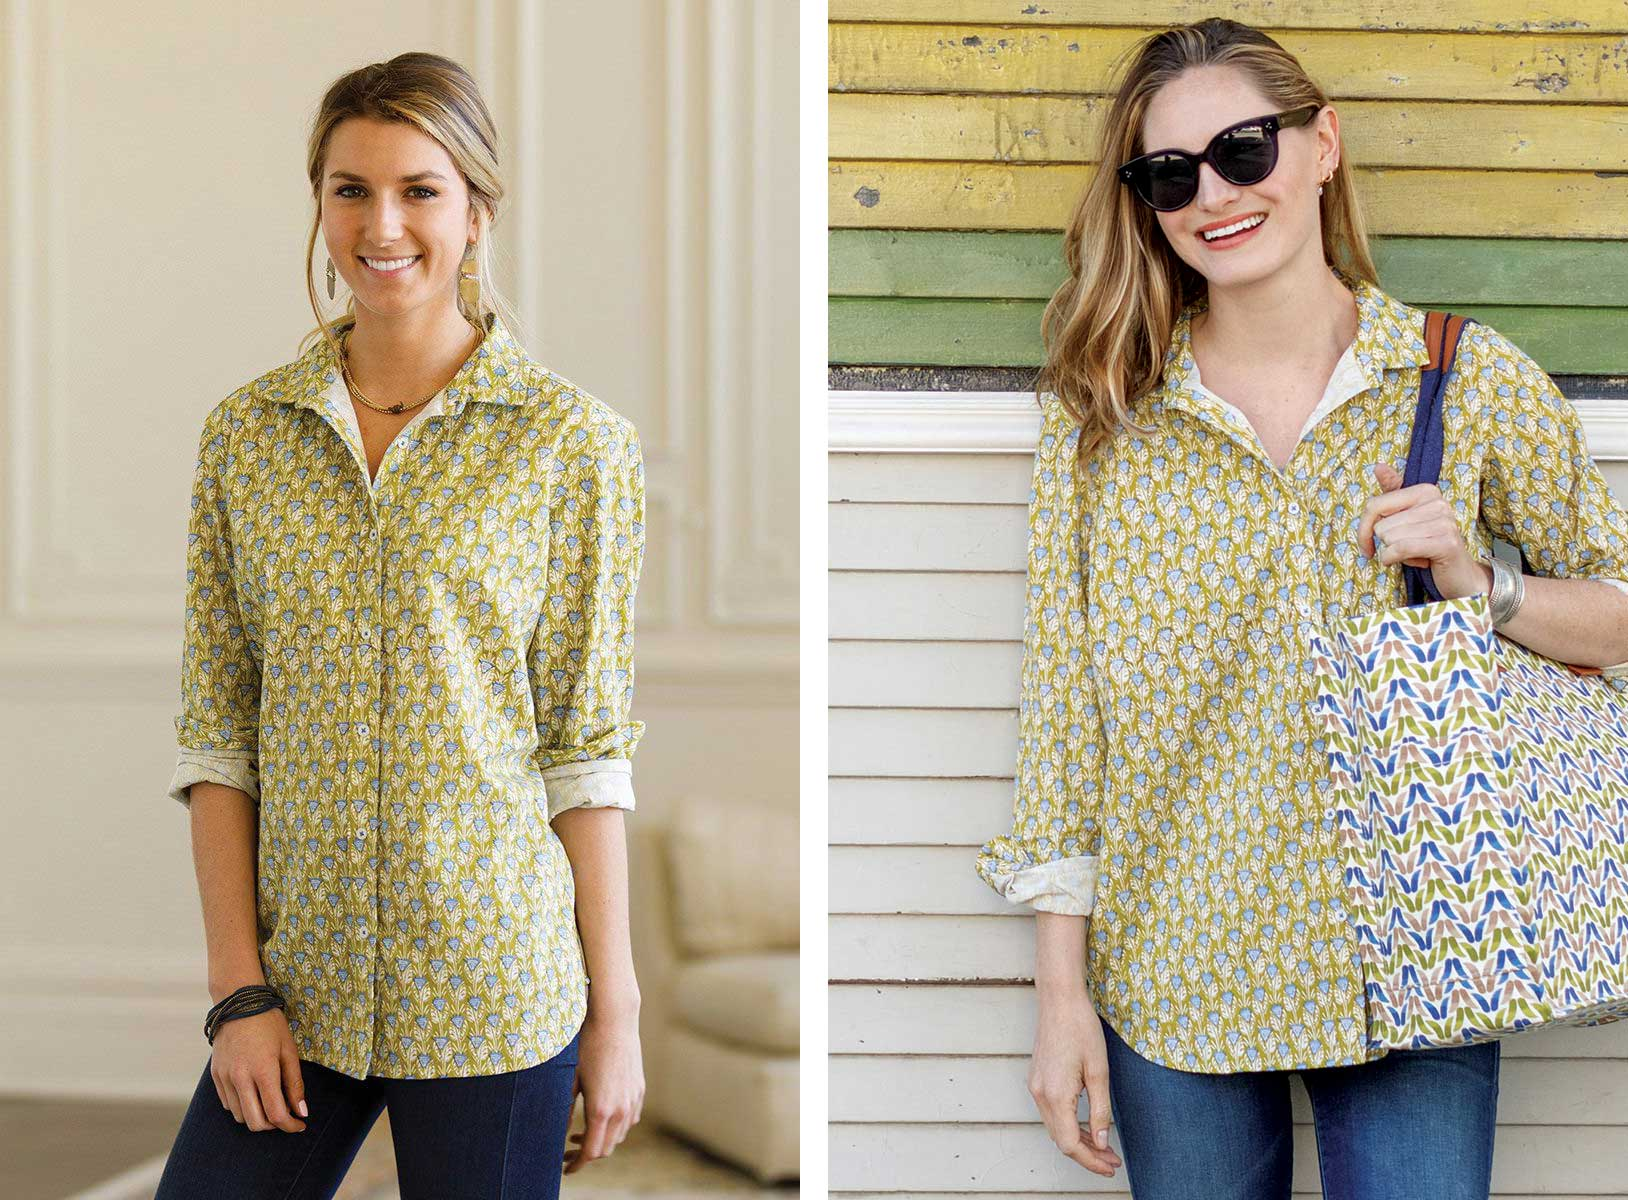 Harlow Olive Green Cotton Button Down Shirt - great for all seasons!